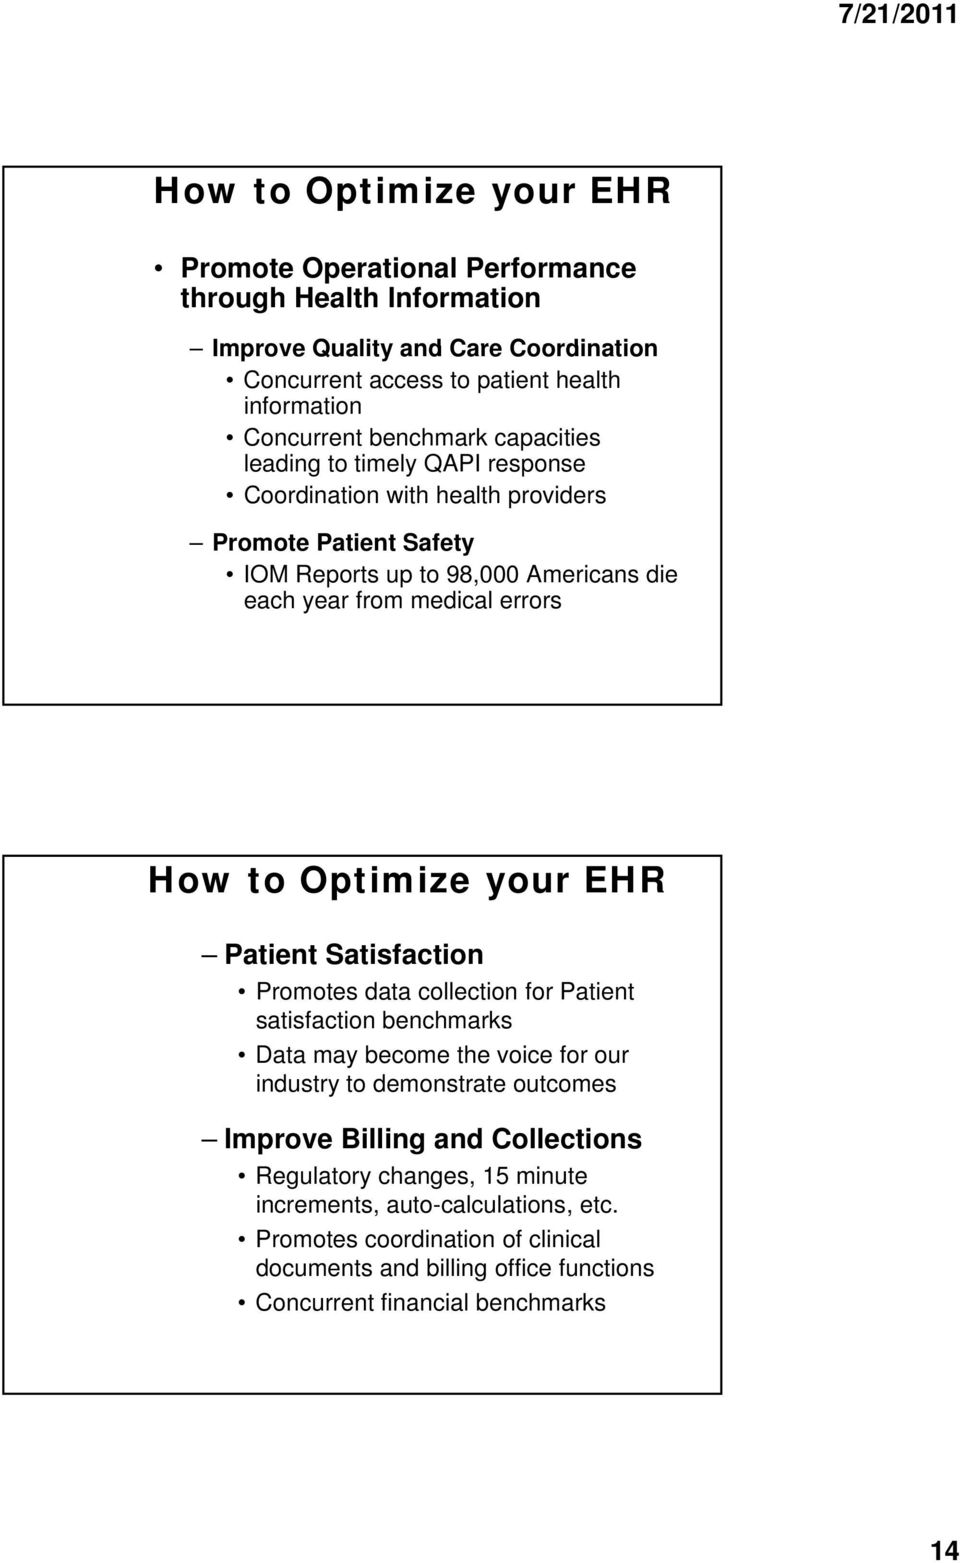 to Optimize your EHR Patient Satisfaction Promotes data collection for Patient satisfaction benchmarks Data may become the voice for our industry to demonstrate outcomes Improve